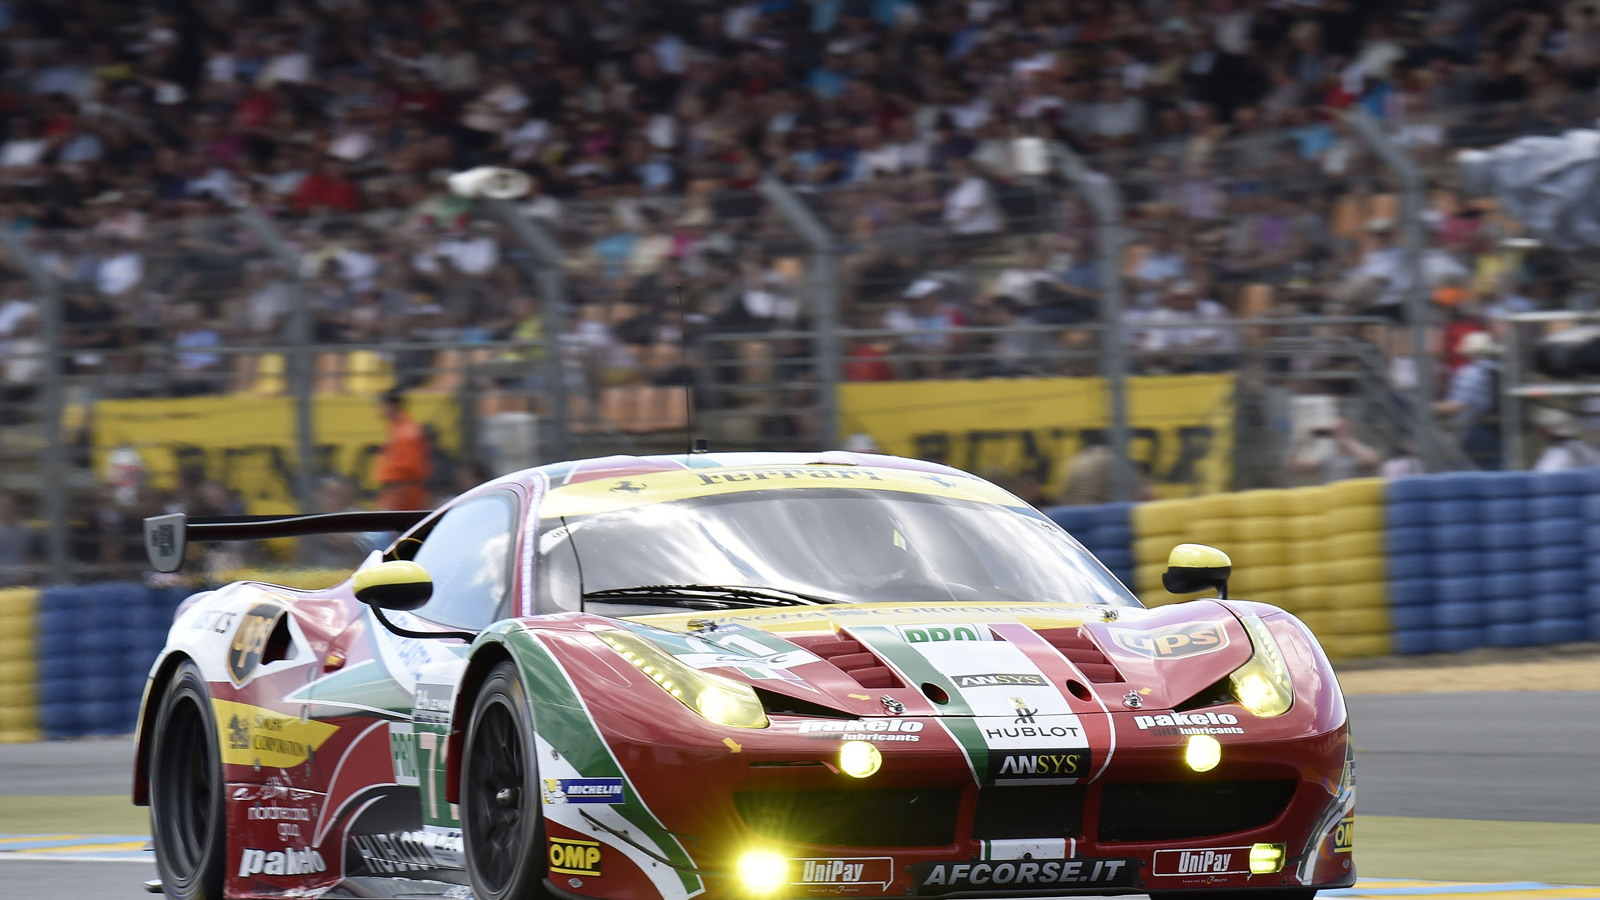 Ferrari at the 2014 24 Hours of Le Mans